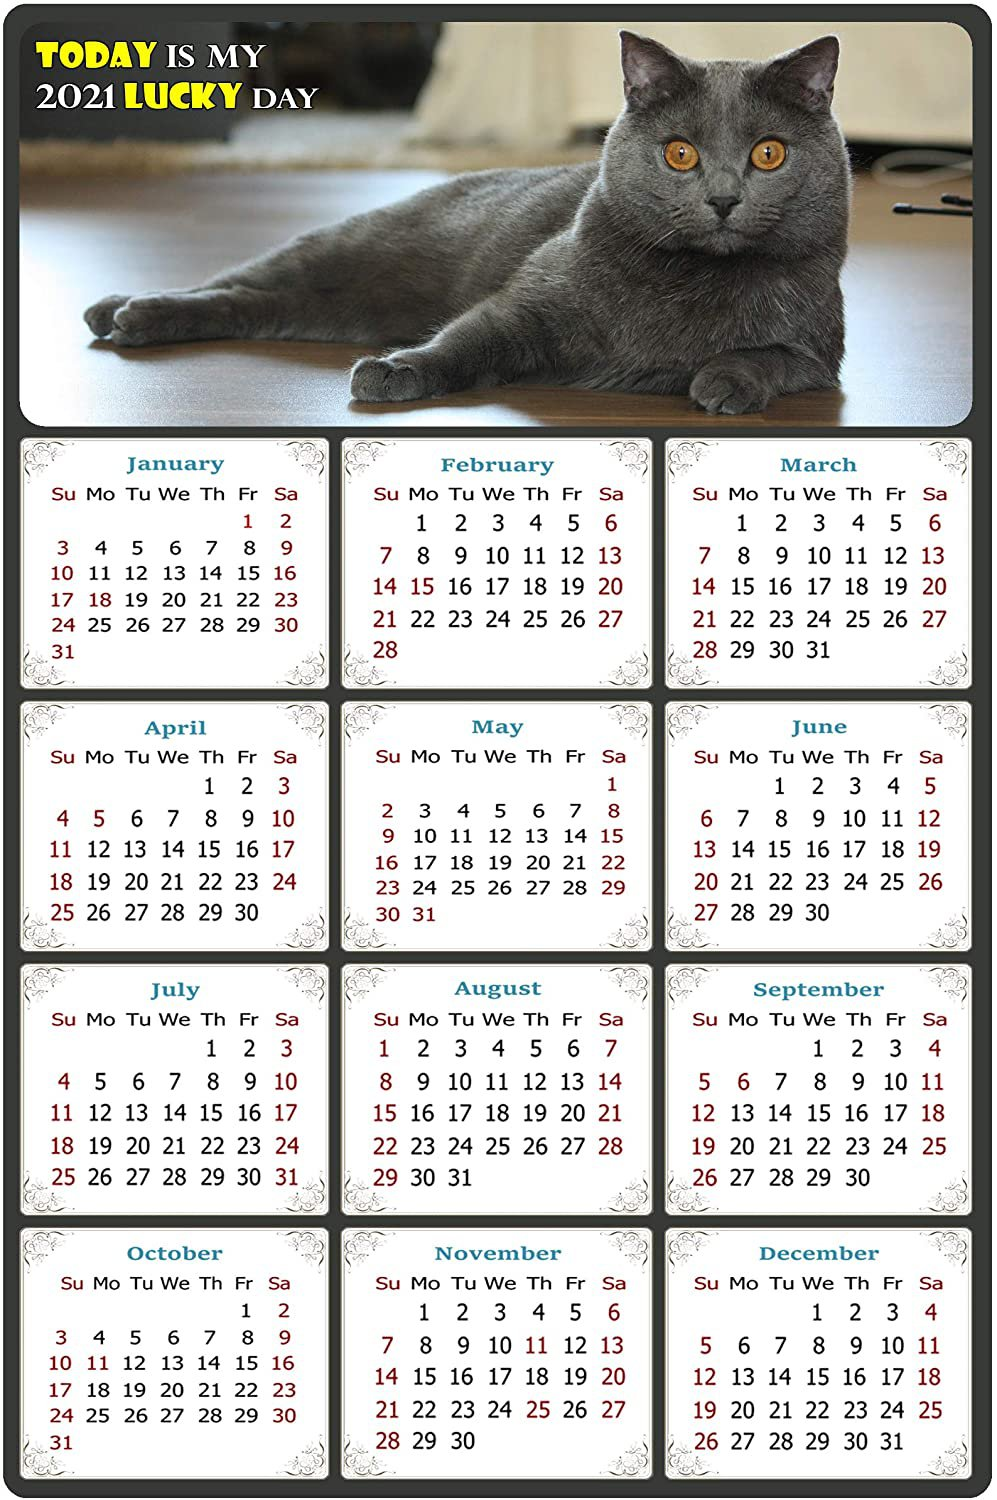 2021 Magnetic Calendar - Calendar Magnets - Today is My Lucky Day - Cat Themed 014 (7 x 10.5)